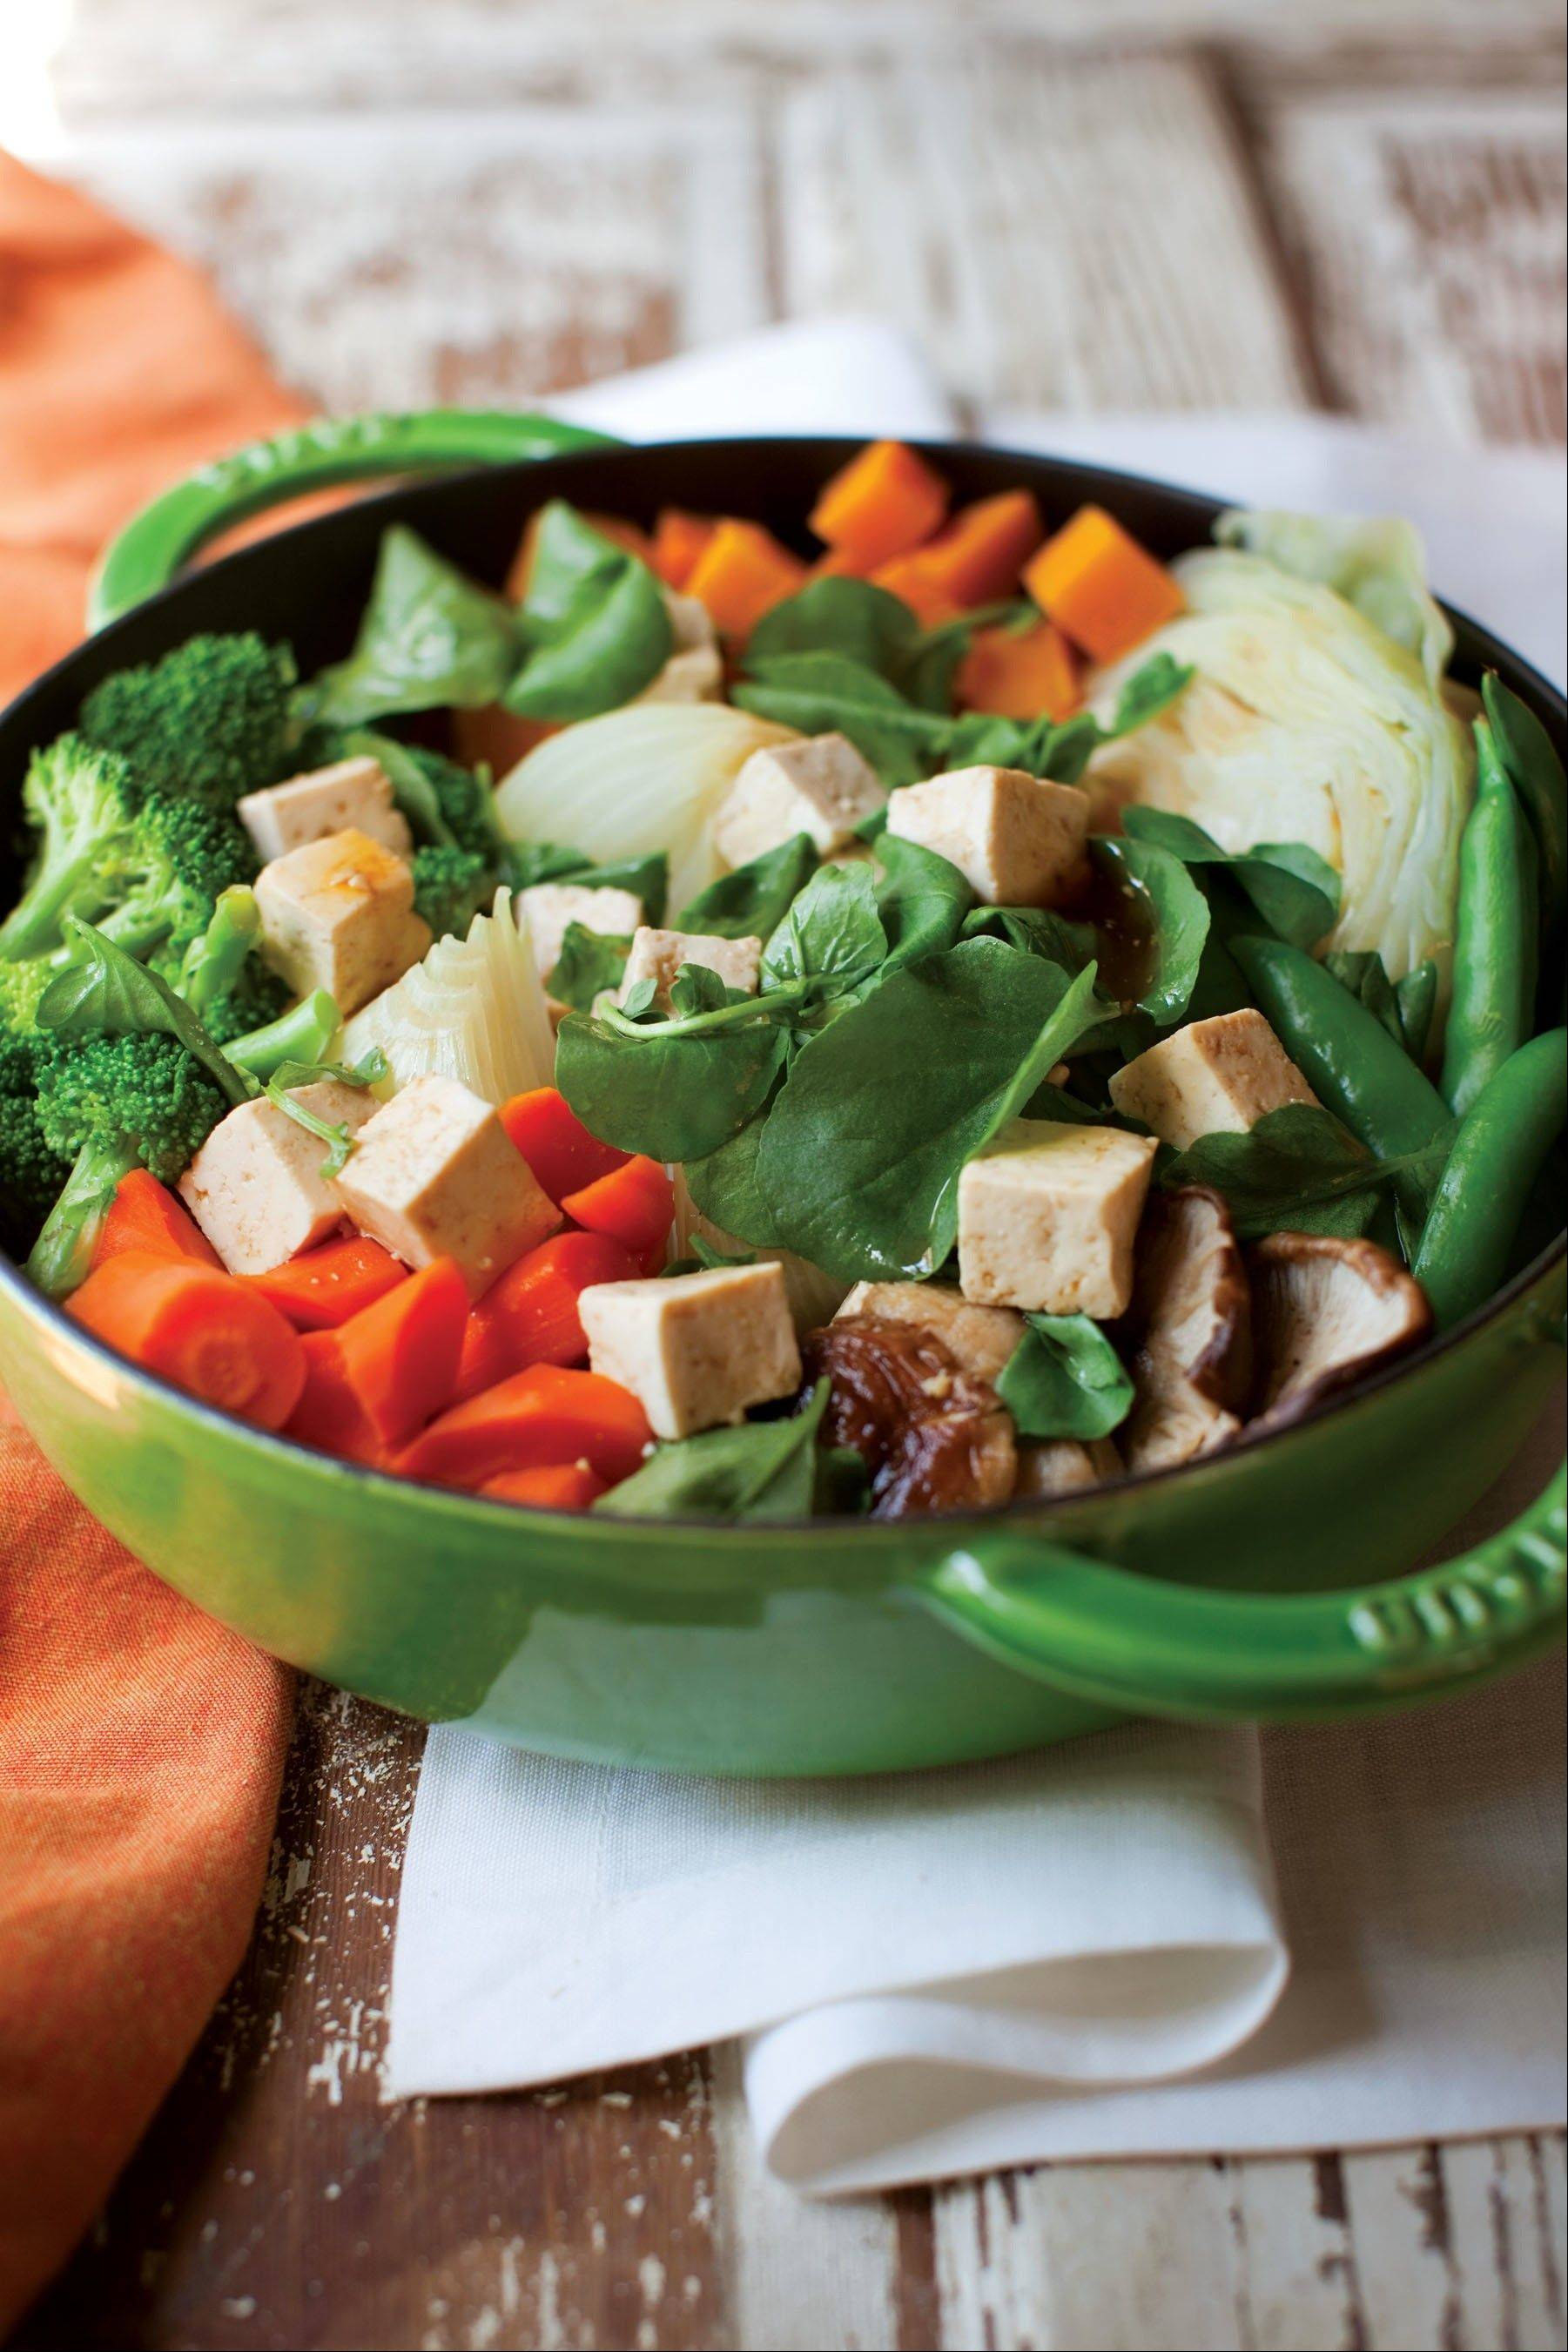 "Vegan meals like this beautiful and tasty vegetable dish from ""Vegan Family Meals"" offer simple alternatives to those wanting to eat less meat."